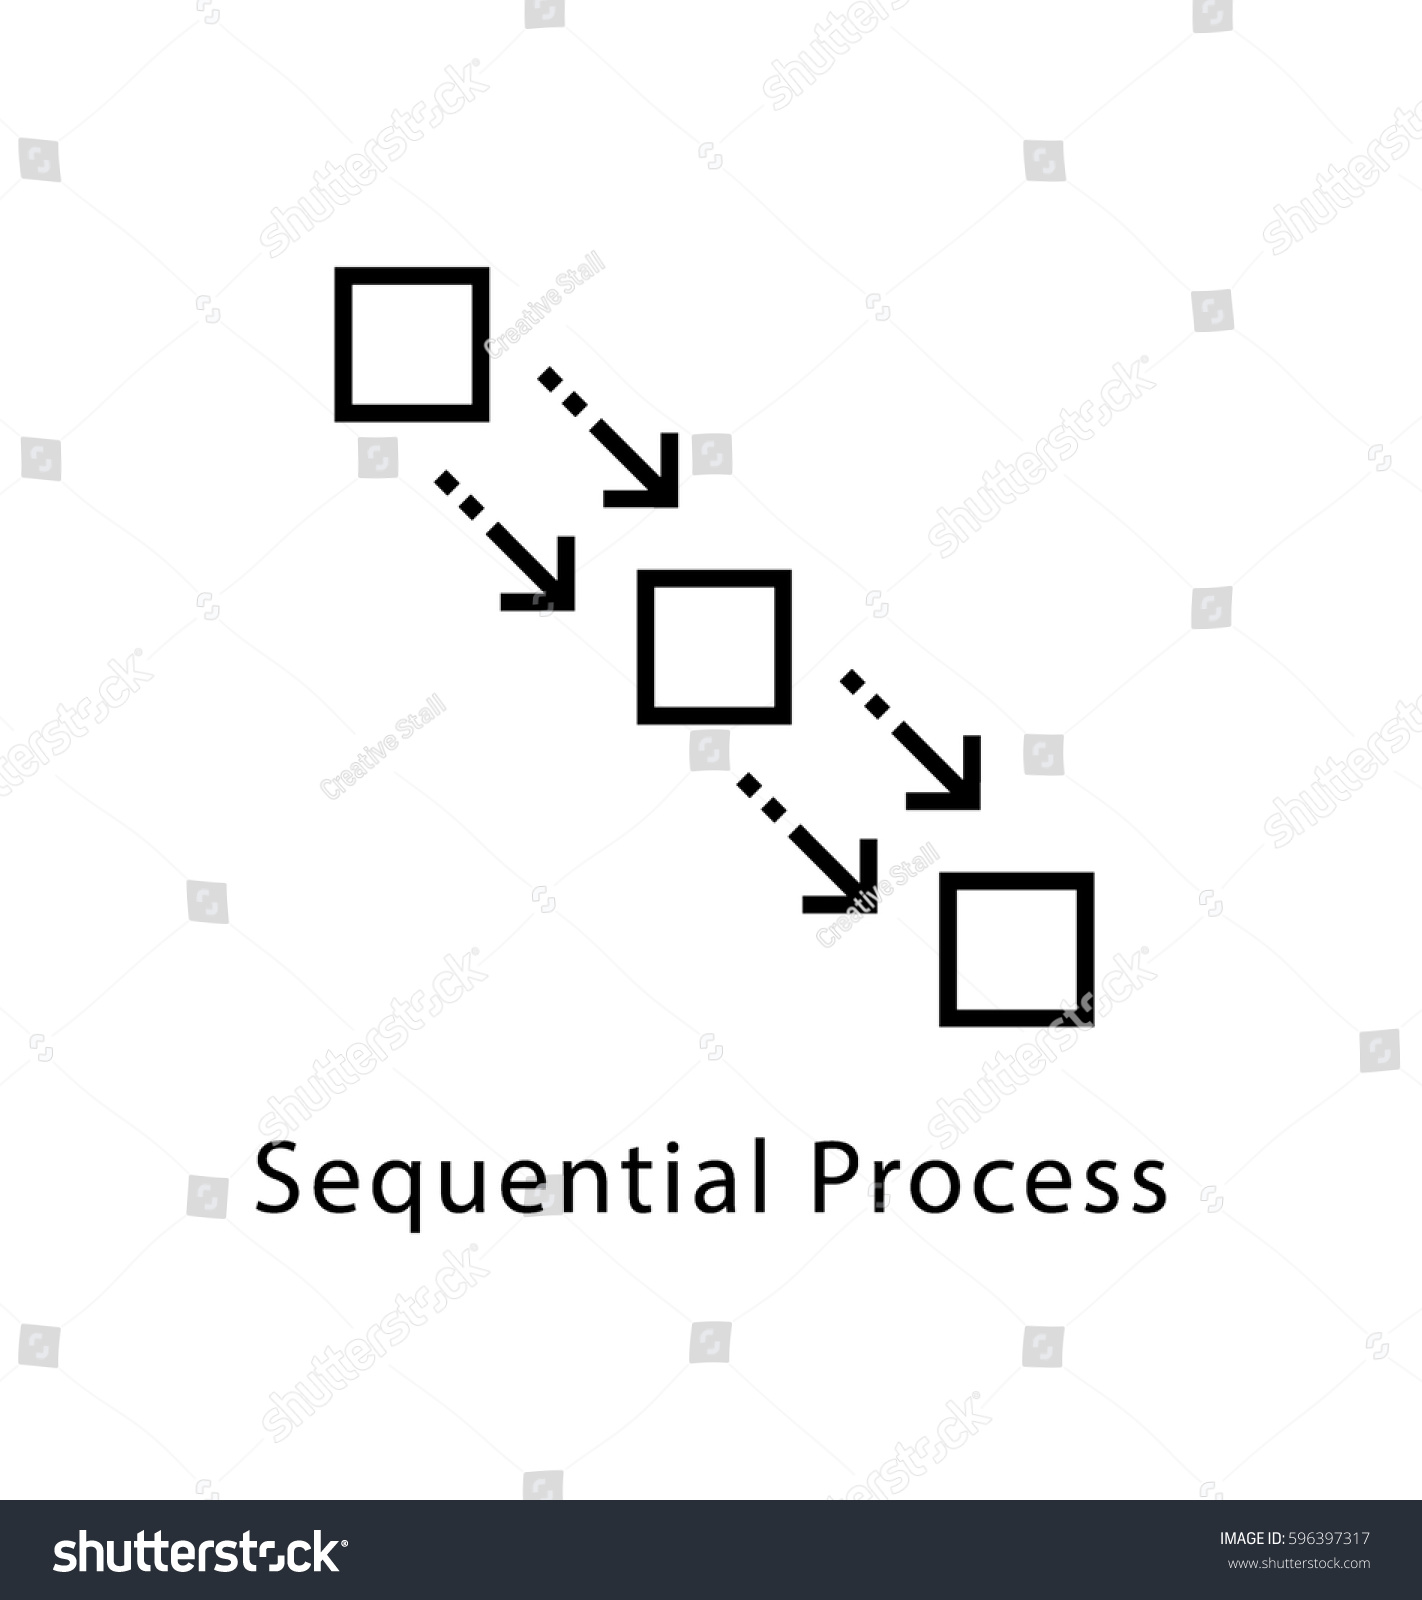 Sequential process vector line icon stock vector 596397317 sequential process vector line icon nvjuhfo Gallery